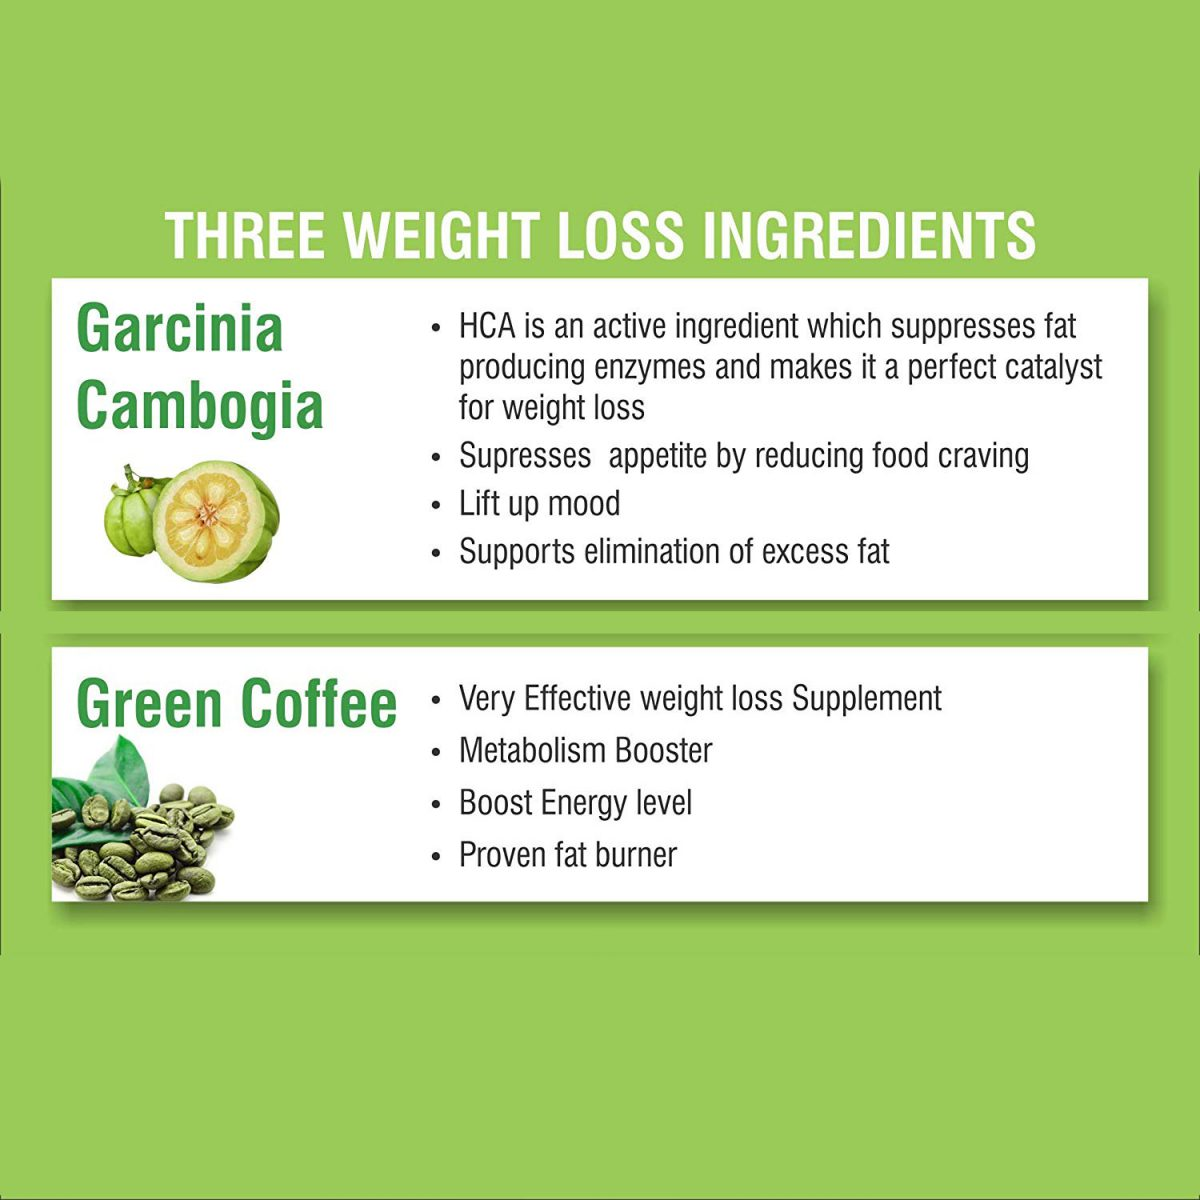 garcinia cambogia capsules/pills, weight loss supplements, fat burning supplements, natural weight loss supplements